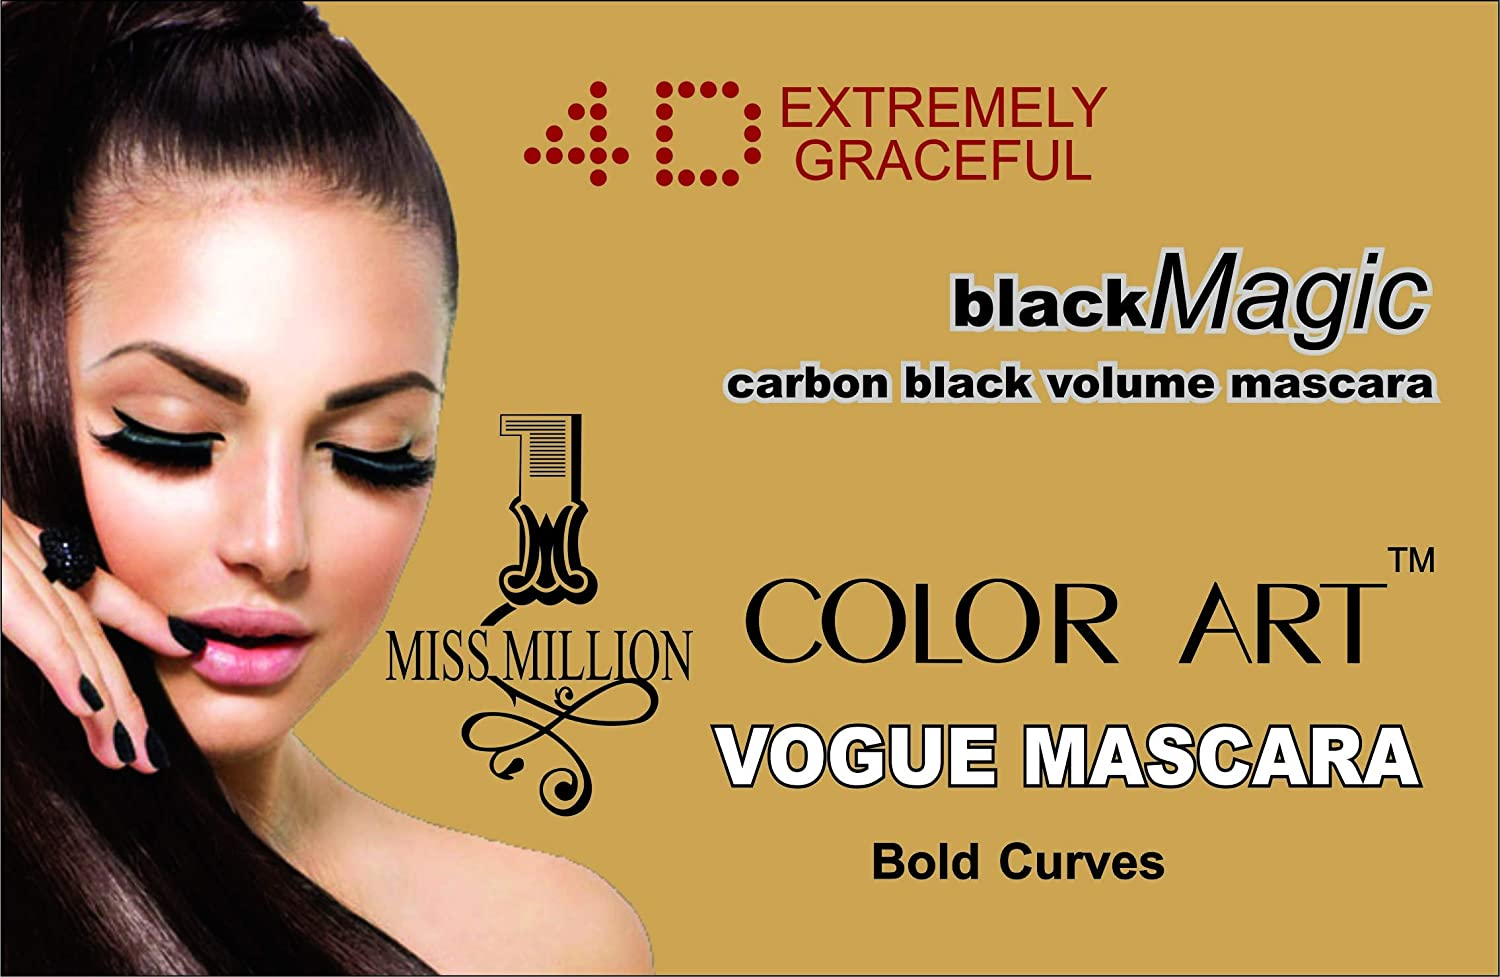 Mascara Low Prices In Online Miss India Buy At Color Art Million L5j4AR